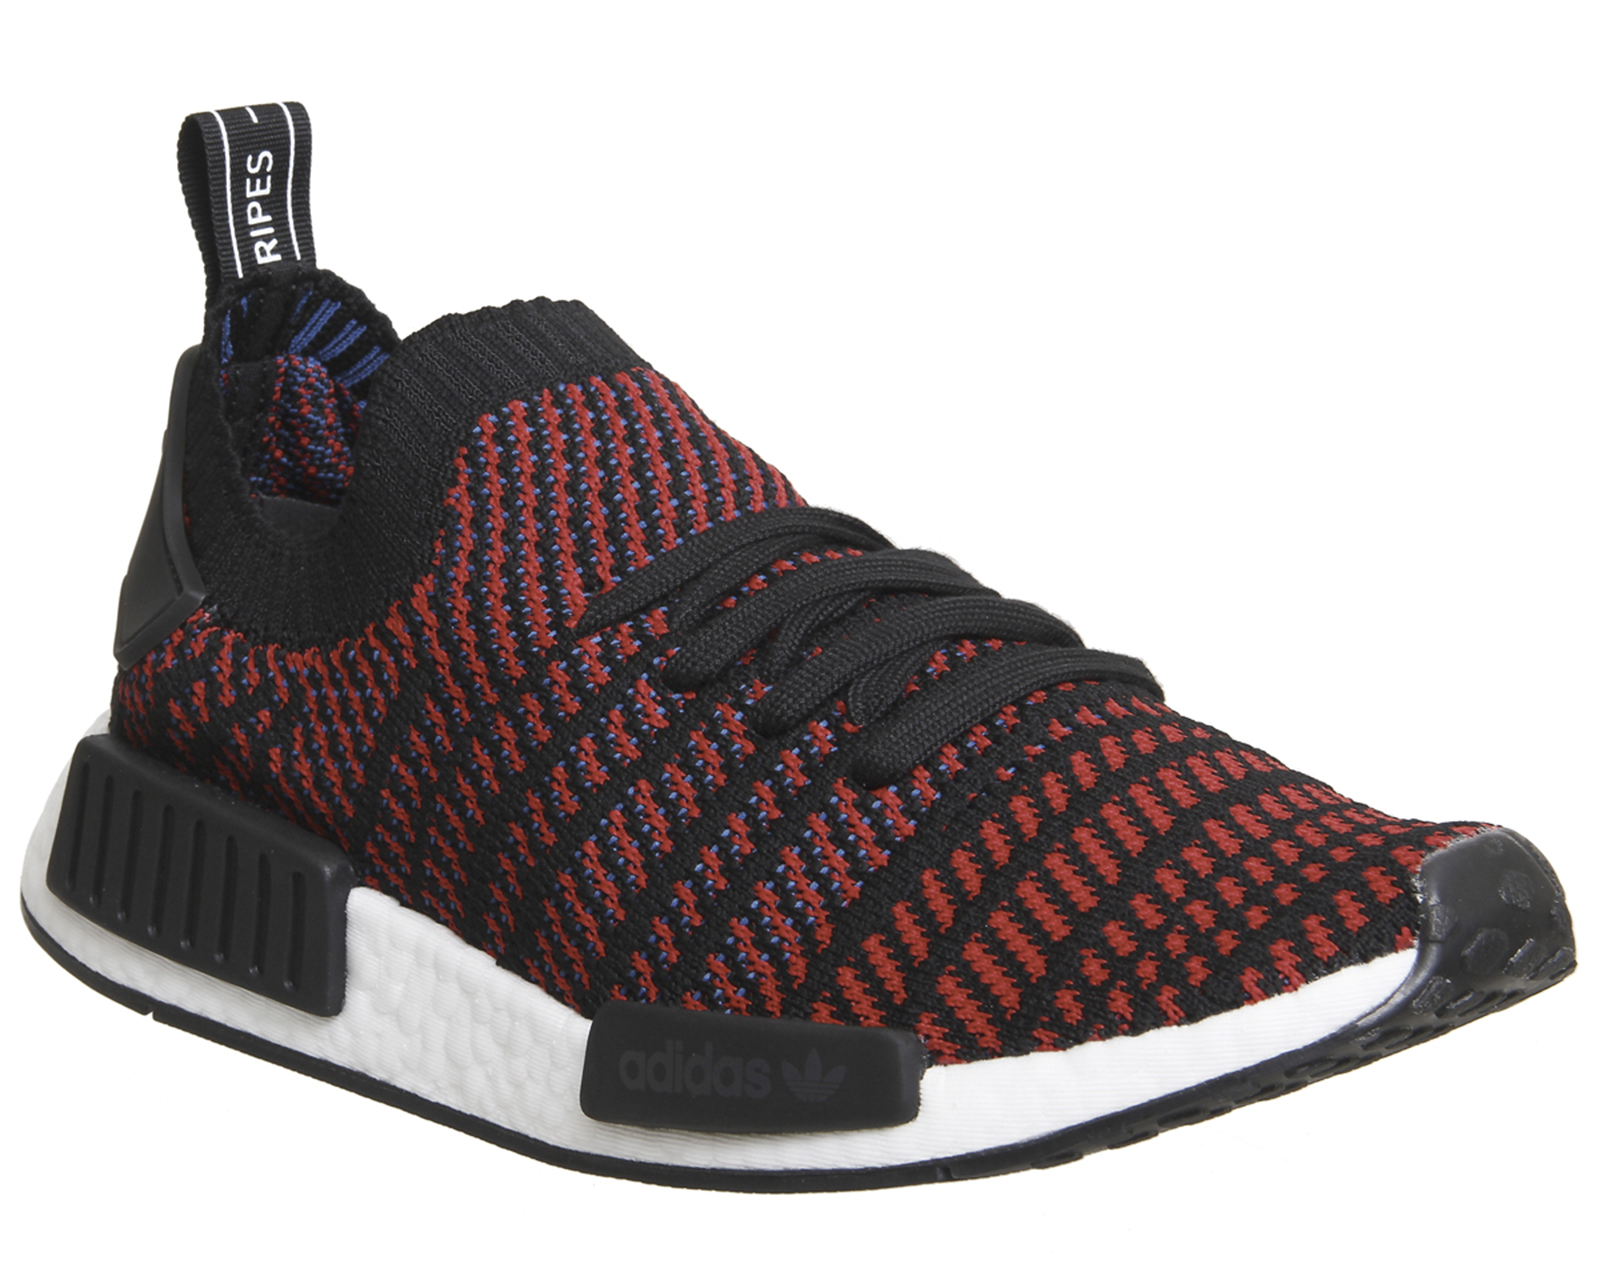 af1d639b3333d Sentinel Adidas Nmd R1 Prime Knit Core Black Red Trainers Shoes